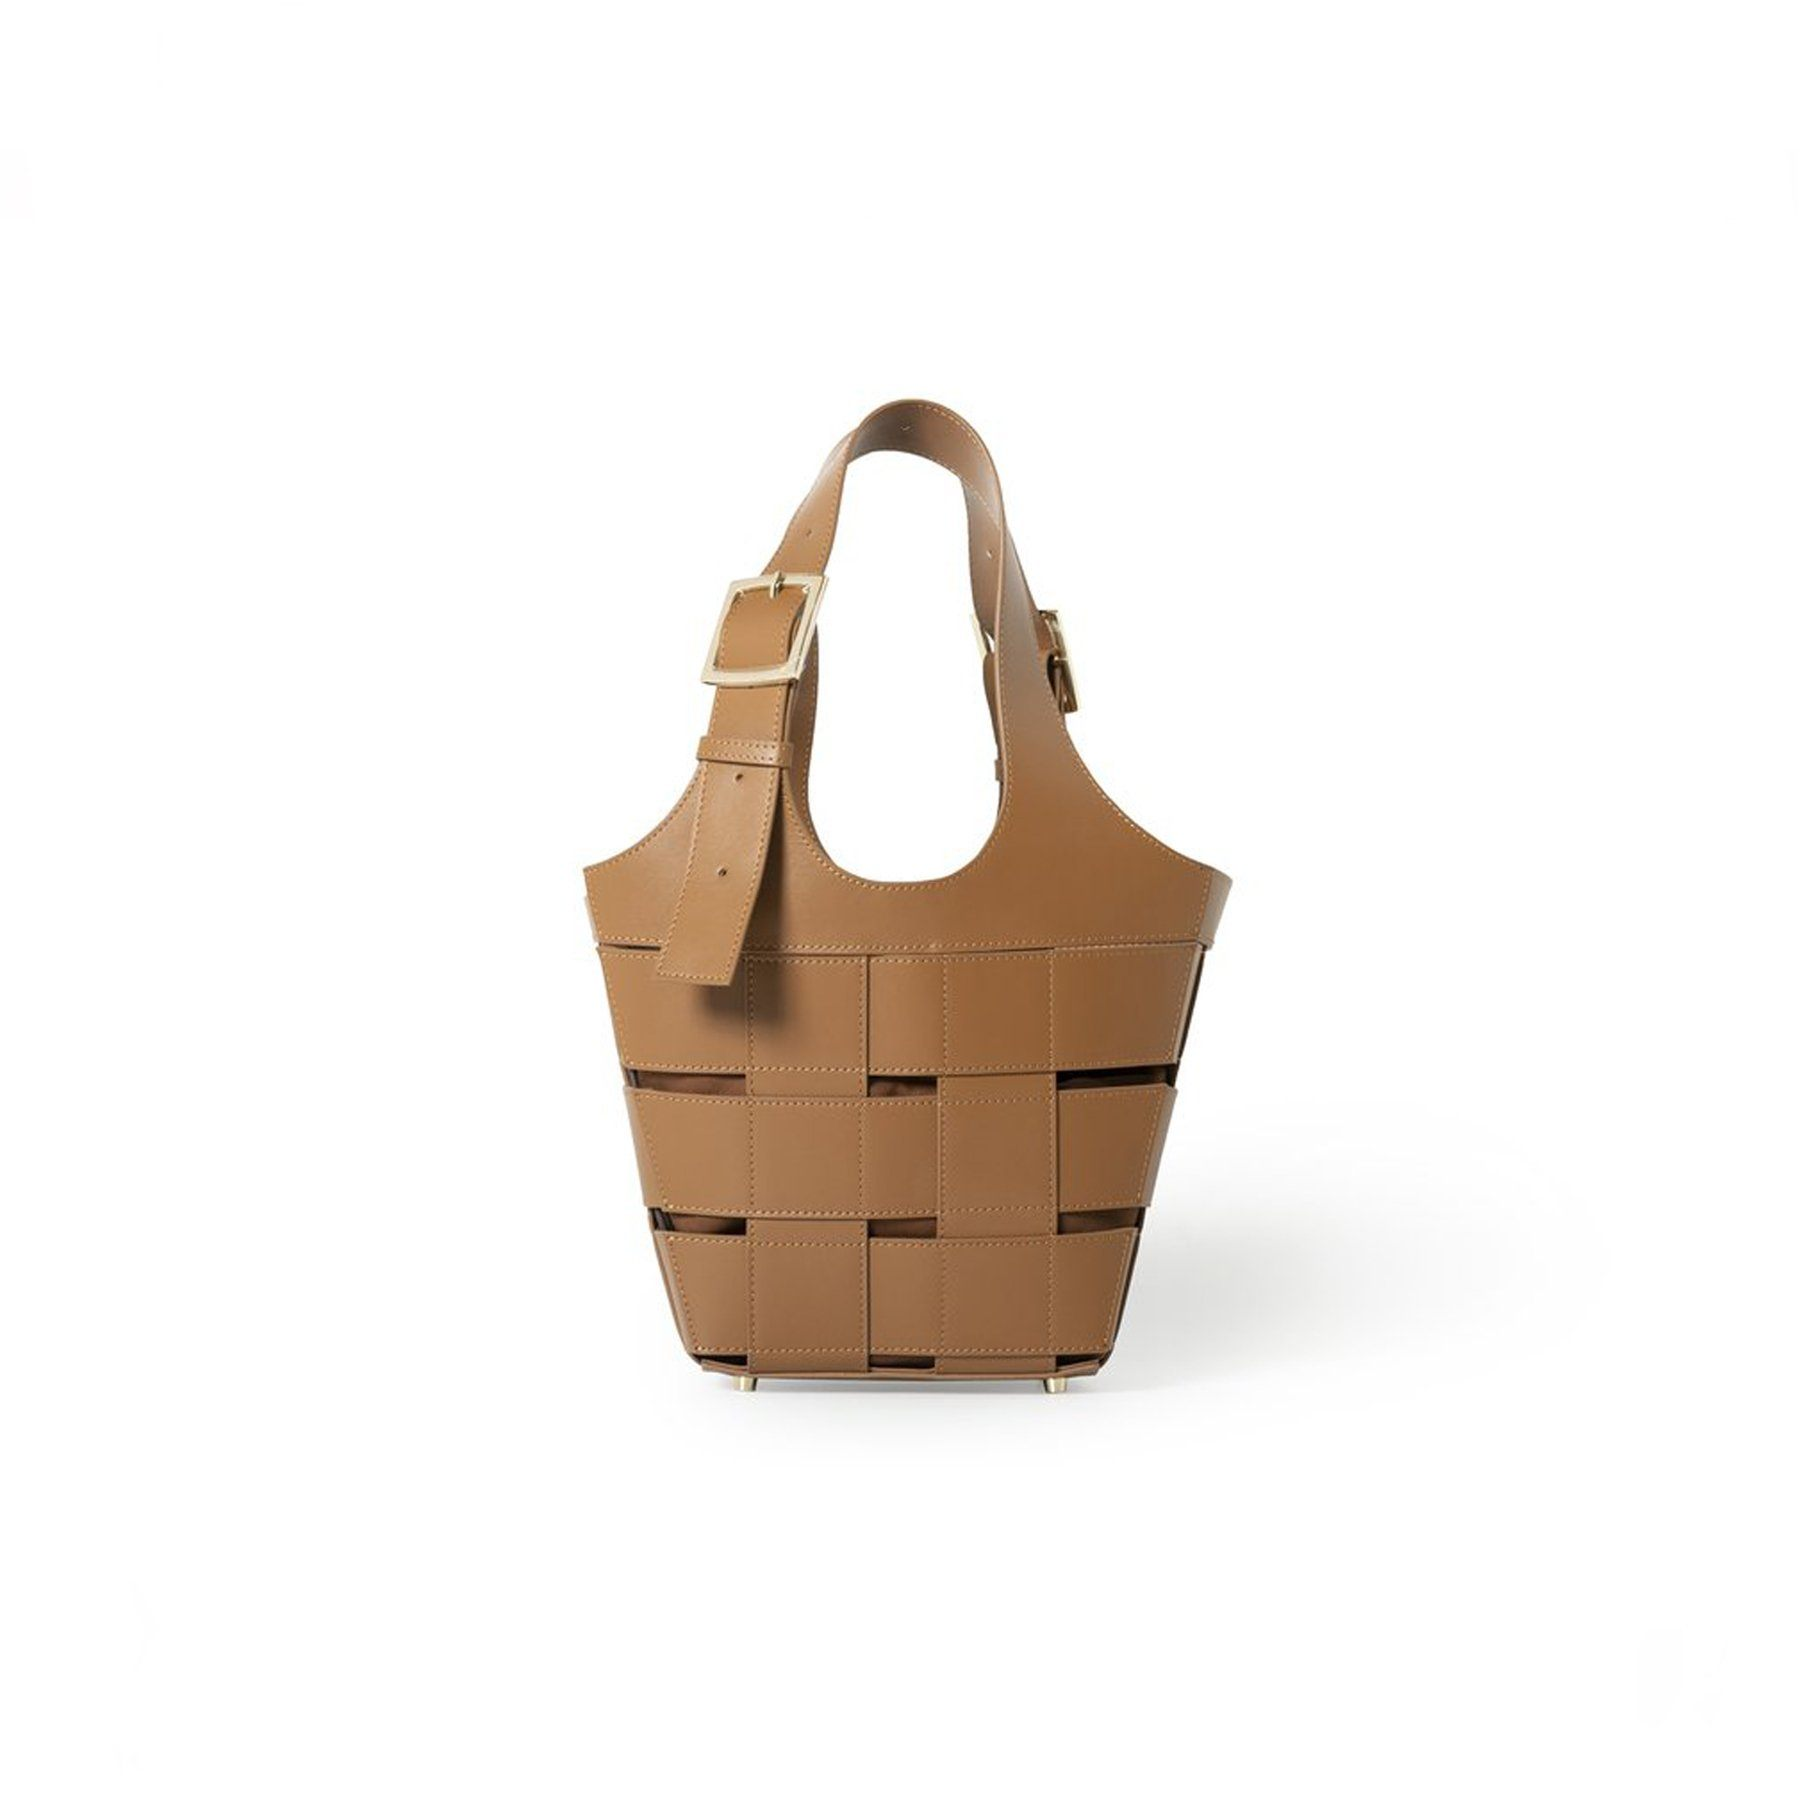 Quincy - Woven Leather Bucket Bag, Brown